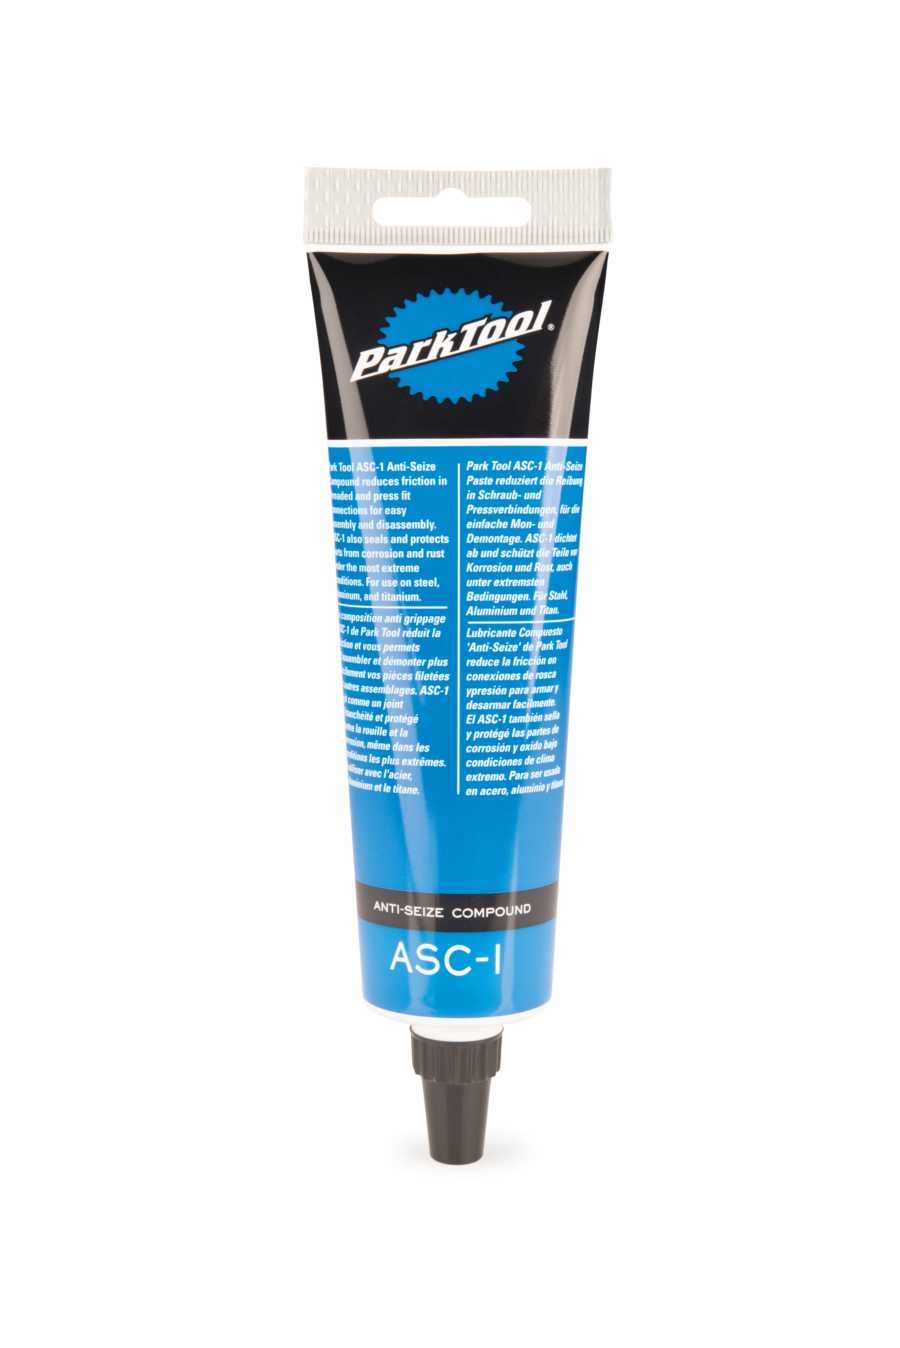 The Park Tool ASC-1 Anti-Seize Compound, enlarged